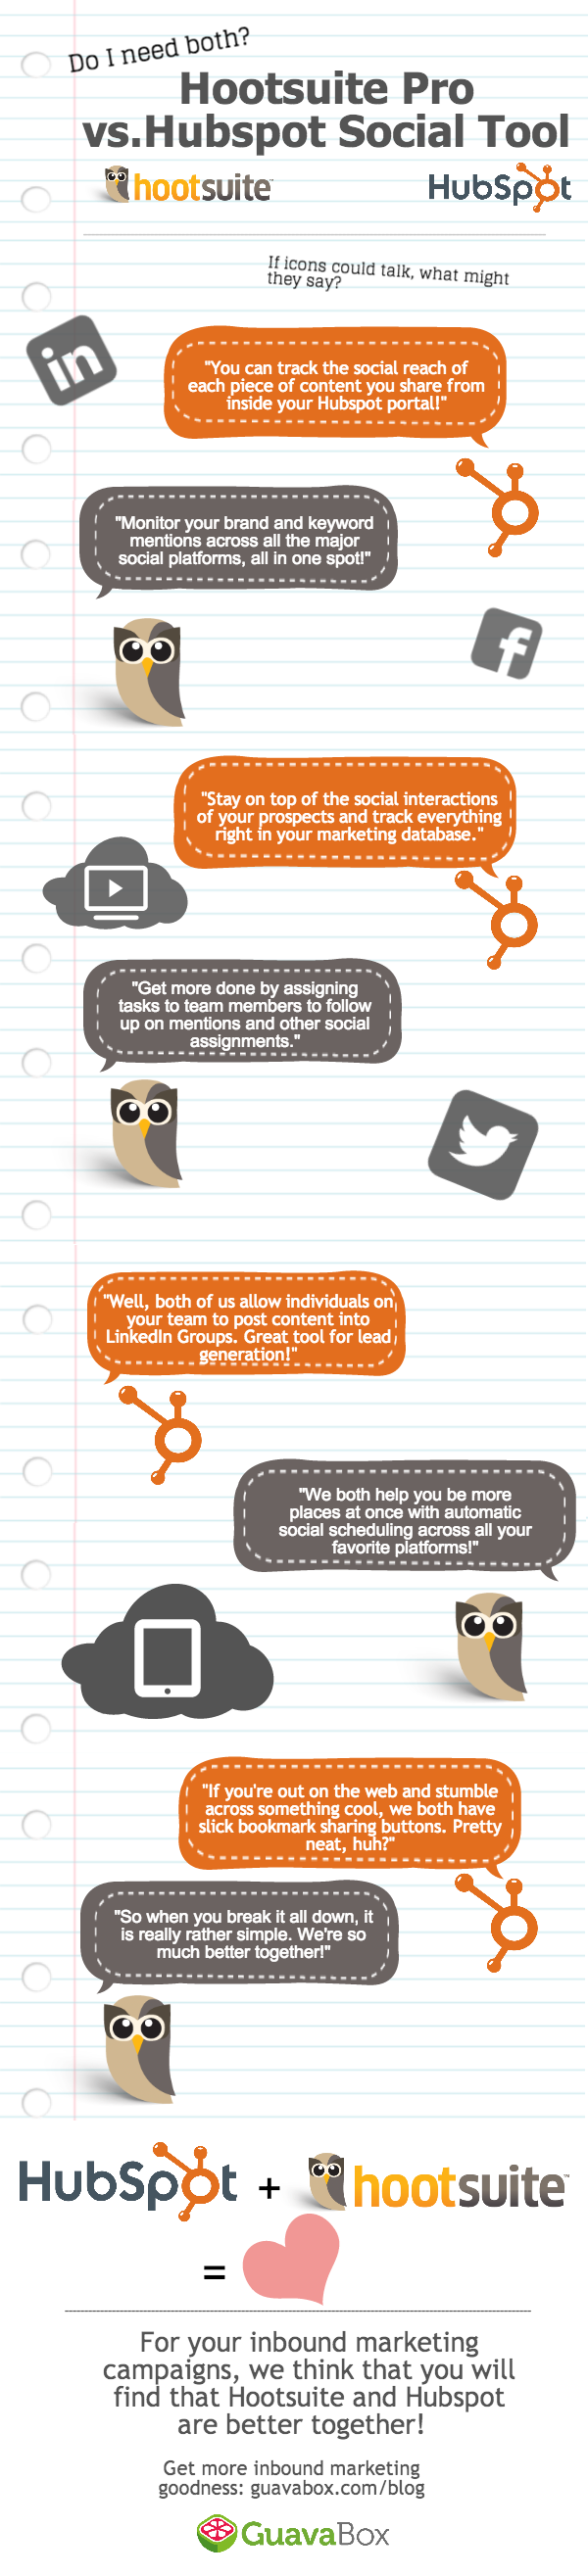 Social Media Marketing with Hootsuite and Hubspot